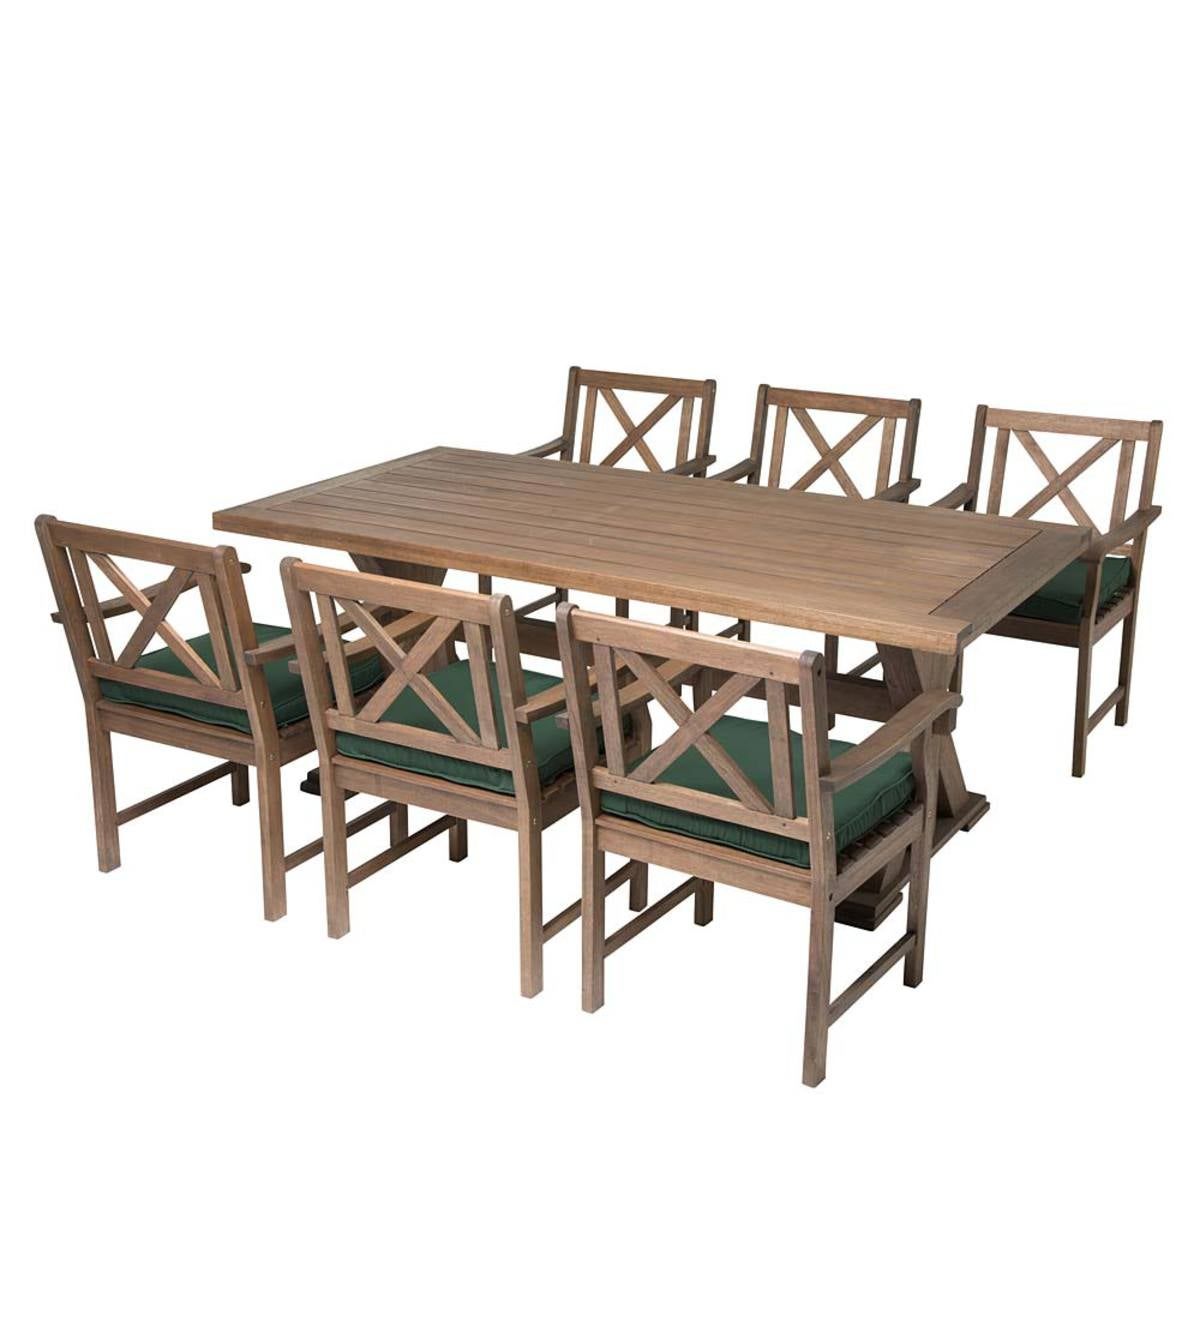 Plow And Hearth Furniture: Claremont Outdoor Dining Furniture, Eucalyptus Table And